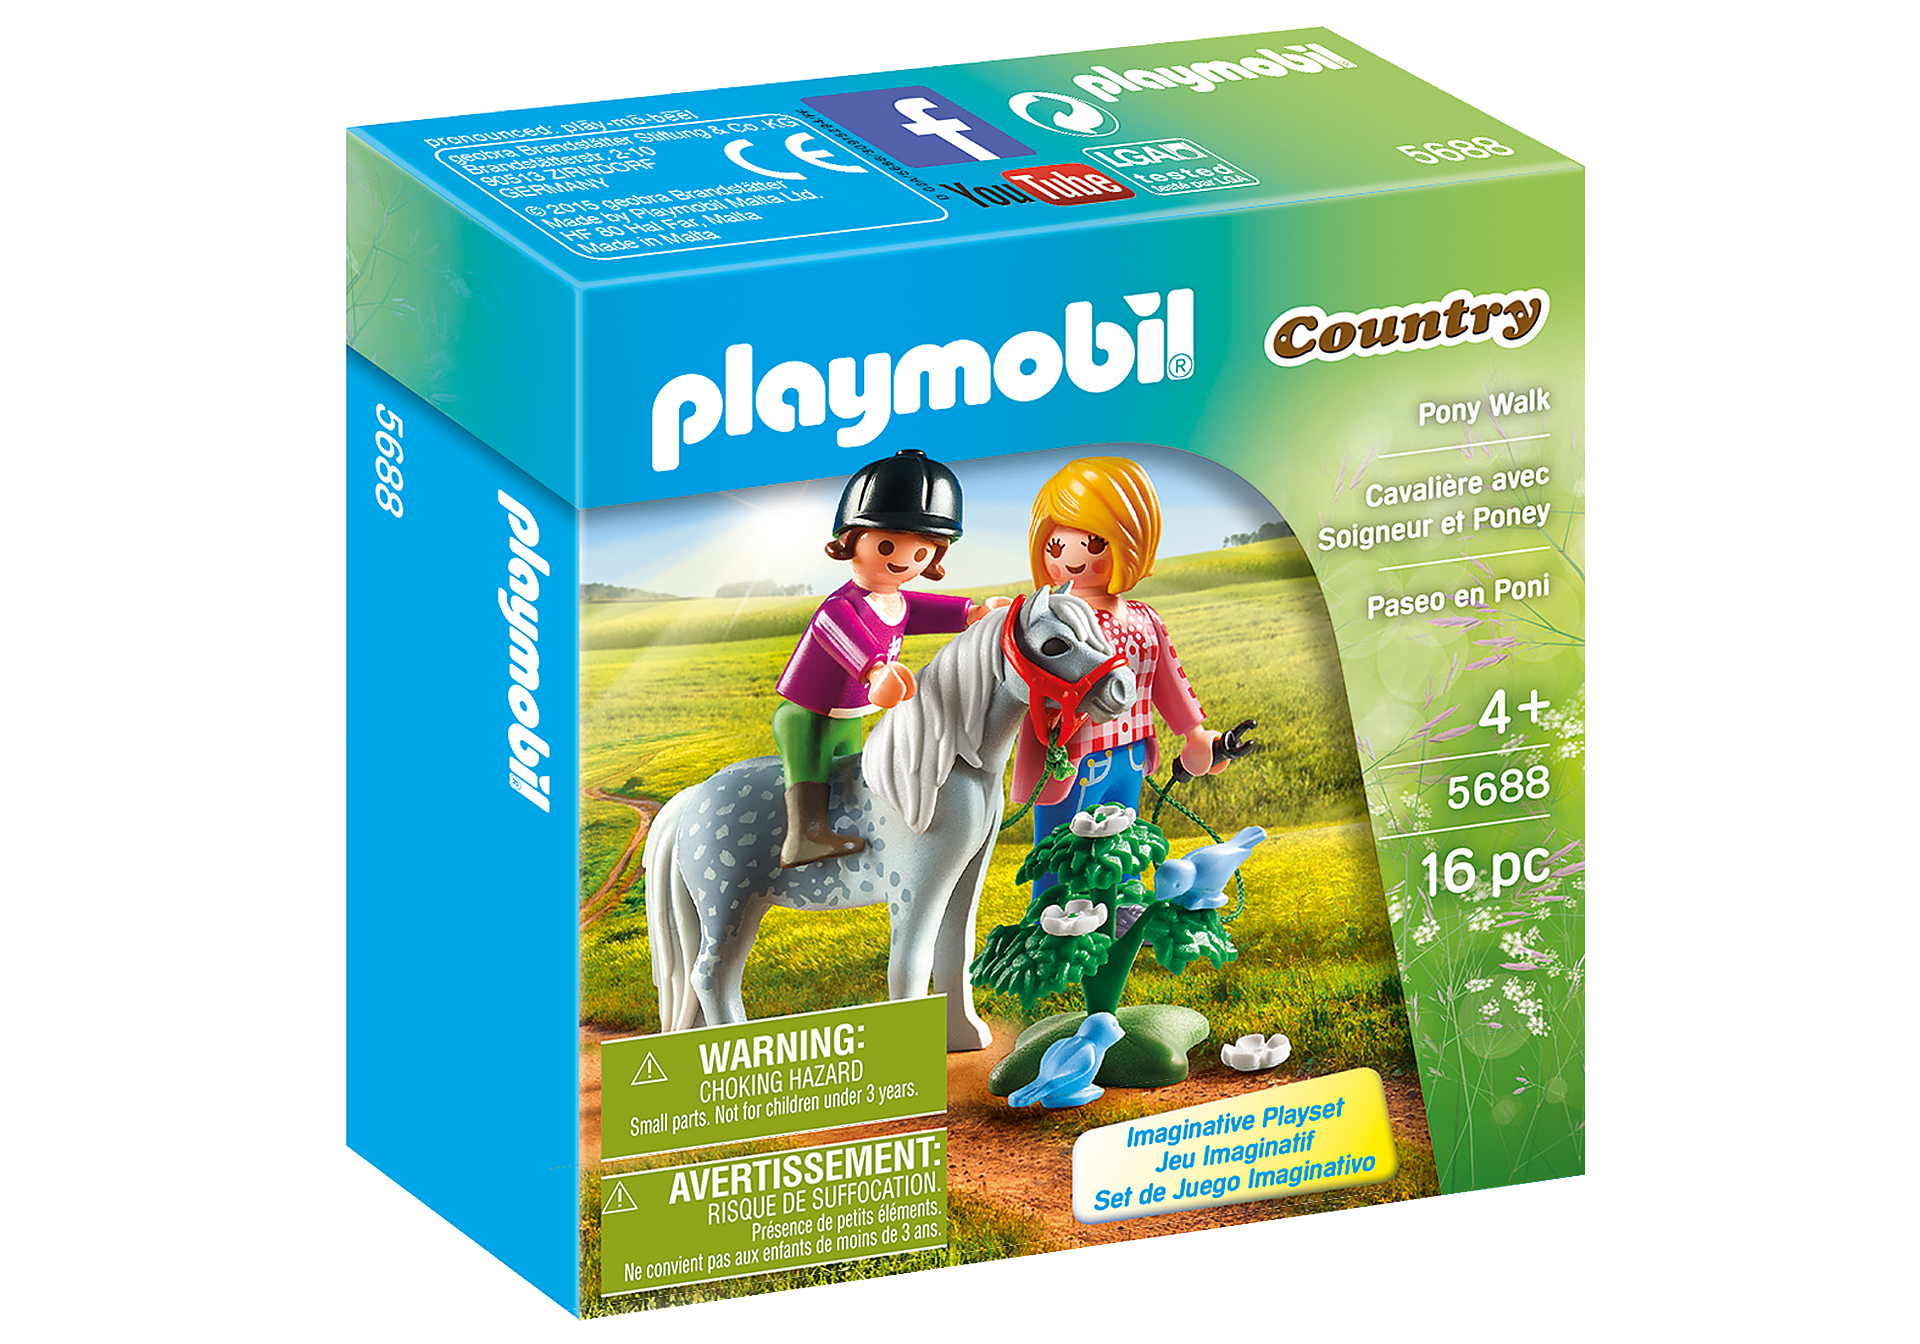 http://media.playmobil.com/i/playmobil/5688_product_box_front/Pony Walk